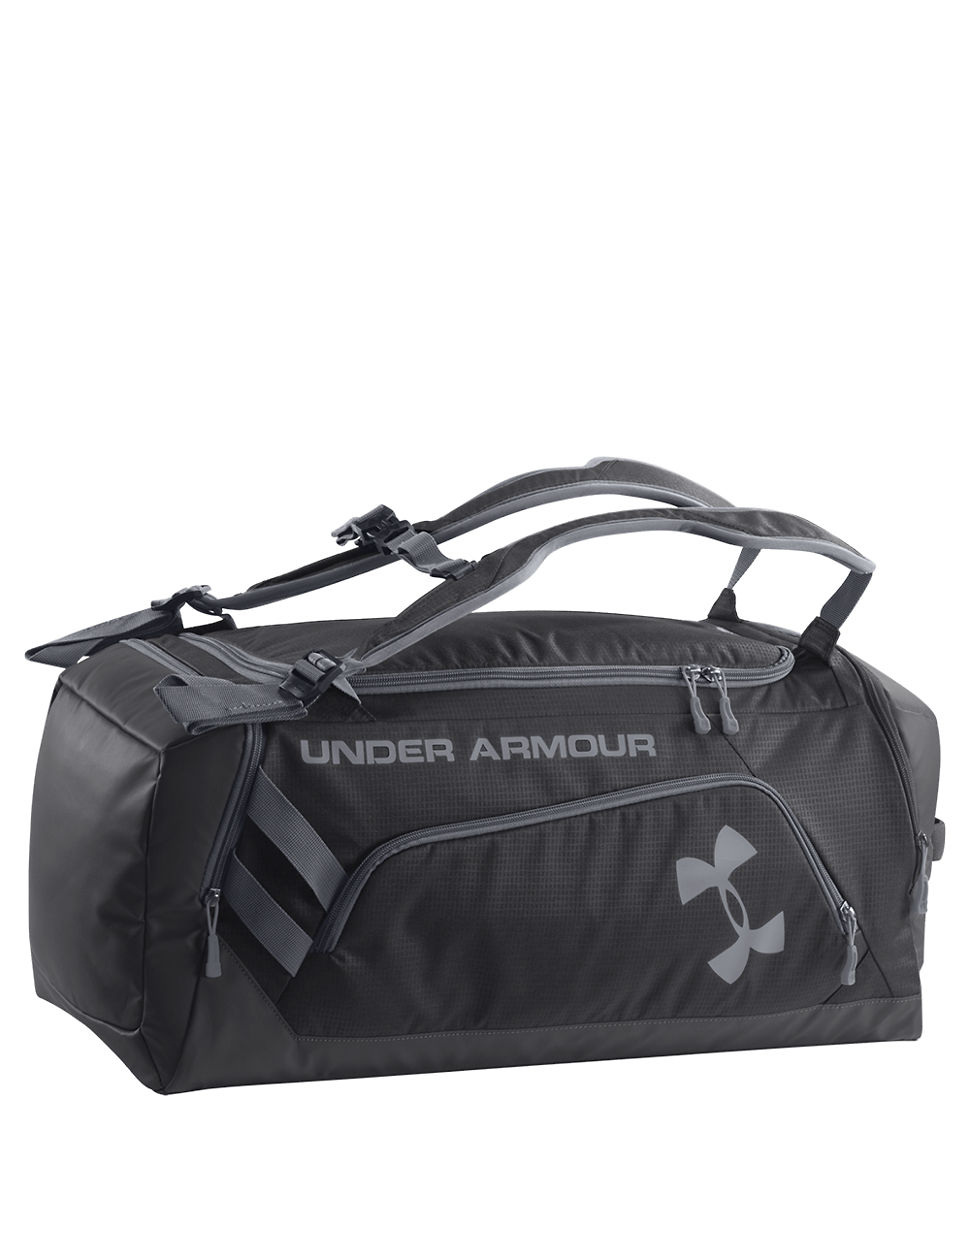 368fc8f0207 Under Armour Gym Bags Uk